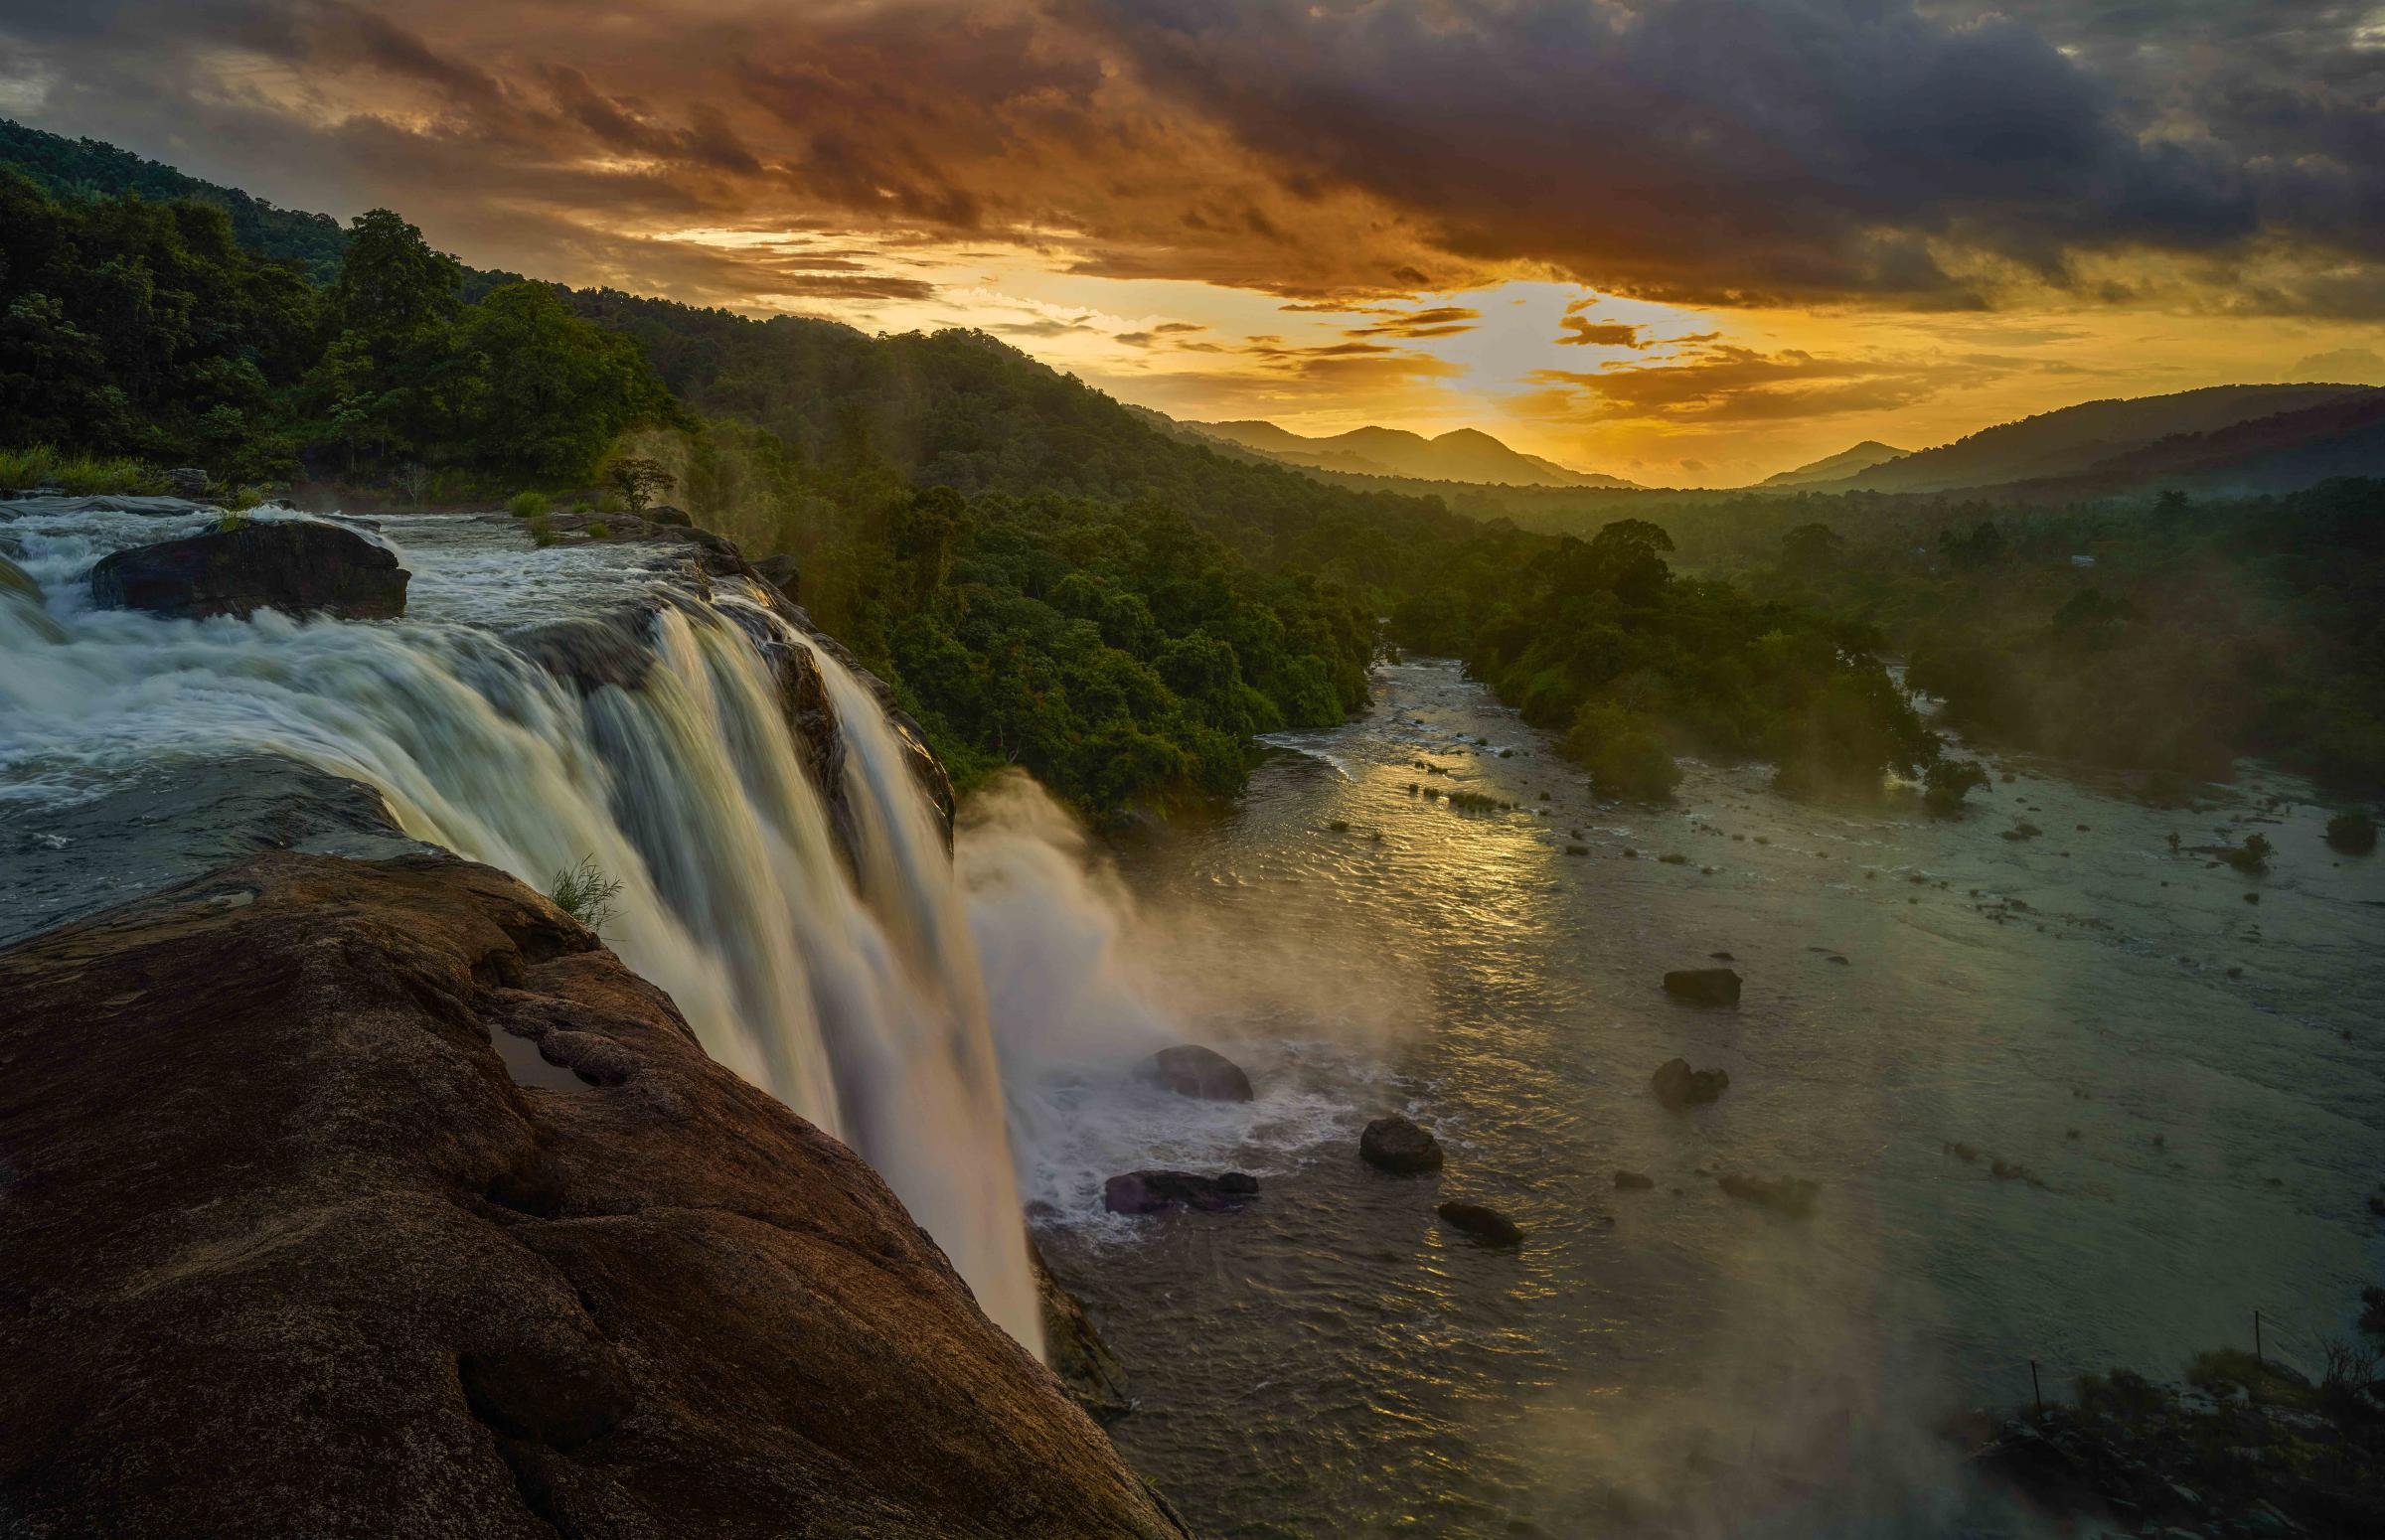 Athirappilly Waterfall Kerala by Shreyas in Regular Member Gallery